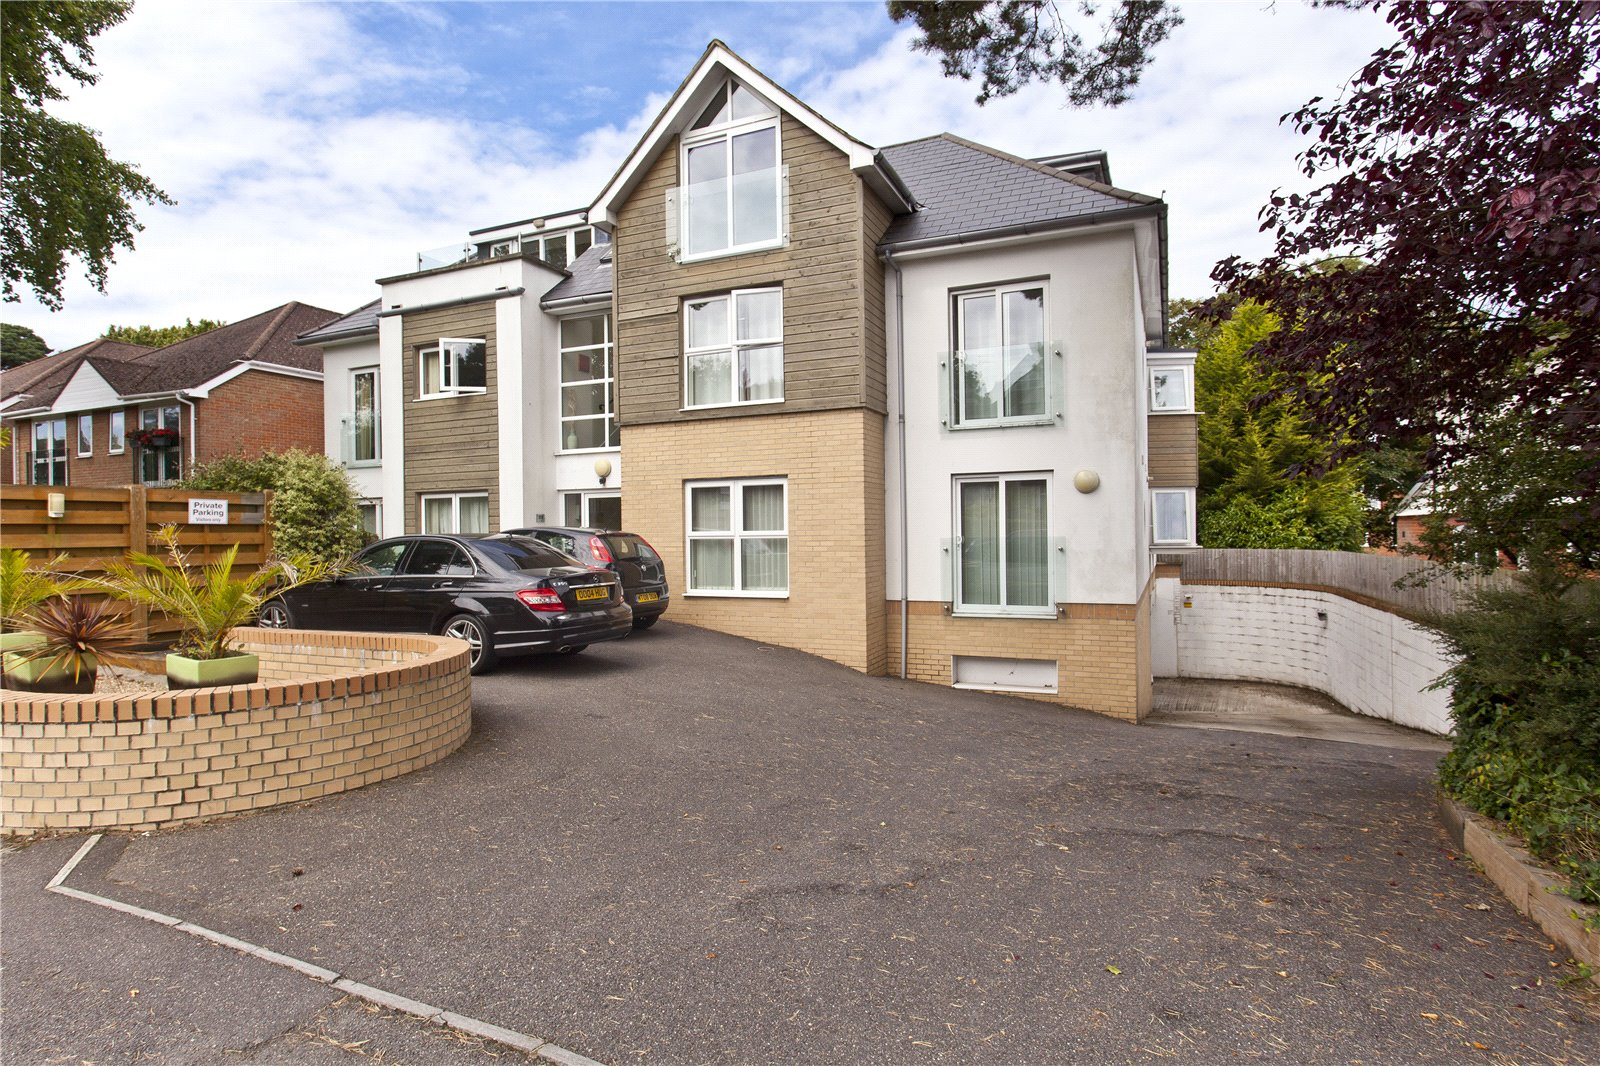 2 bed apartment to rent in Poole - Property Image 1